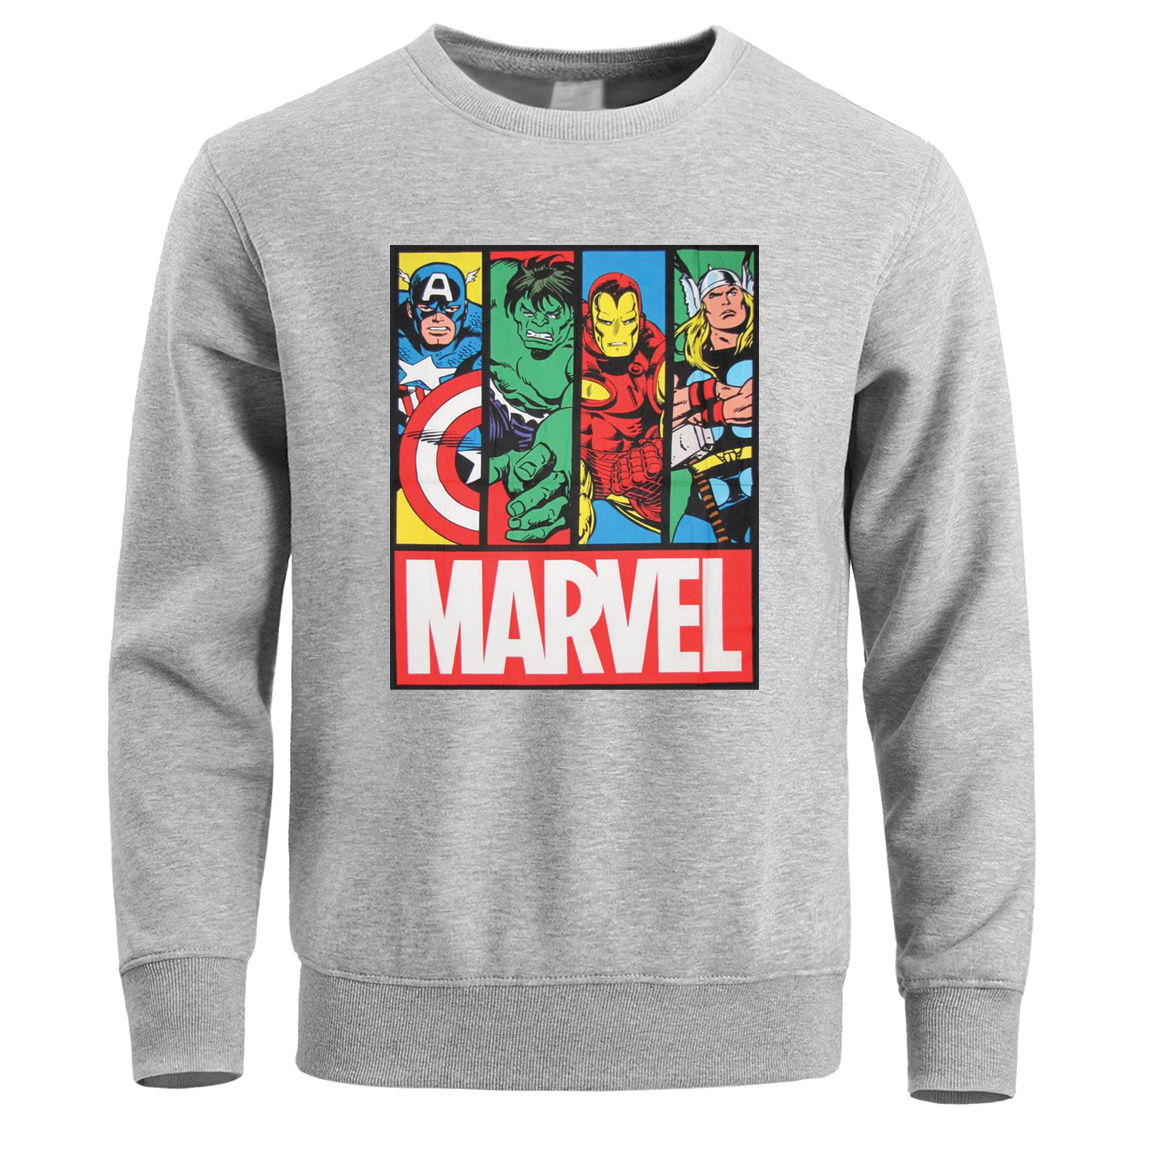 Marvel Hoodies Sweatshirt Thor Hulk Superman Iron Man Superhero Hoodie Men Pullover Sweatshirts Fleece Warm Super Hero Crewneck